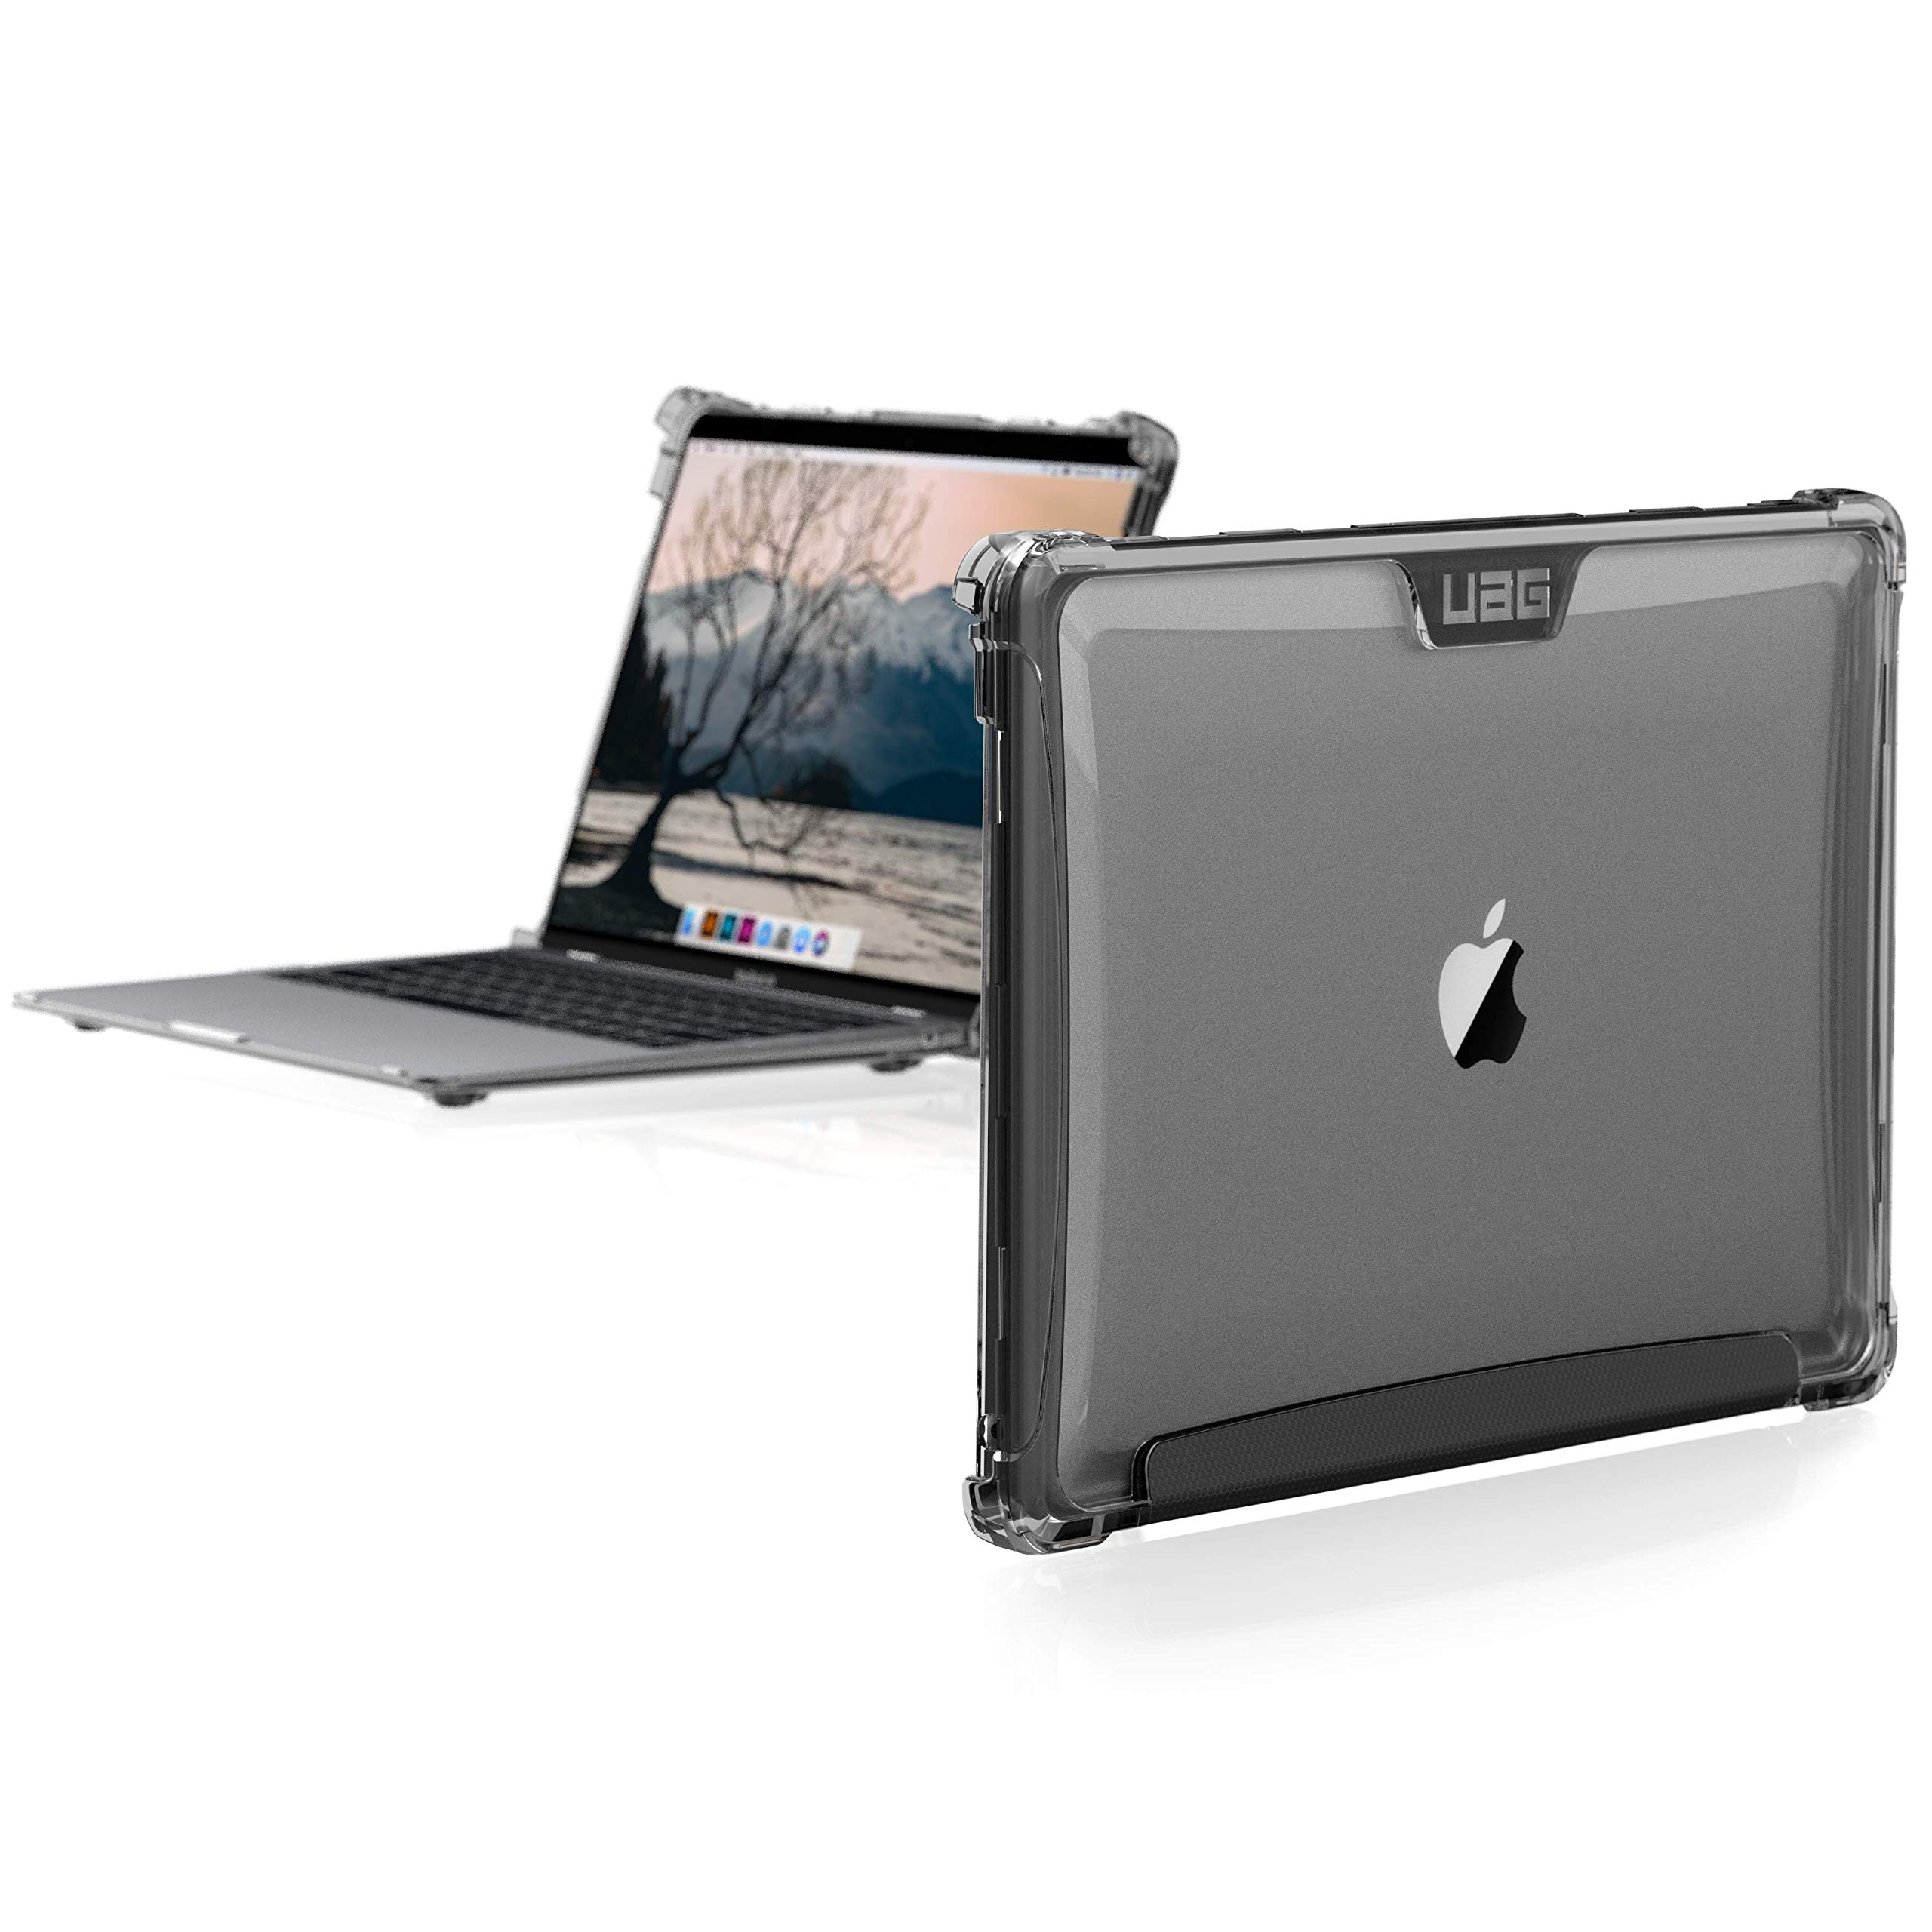 UAG MacBook Air 13-inch (2018) (A1932) Plyo Feather-Light Rugged [Ice] Military Drop Tested Laptop Case